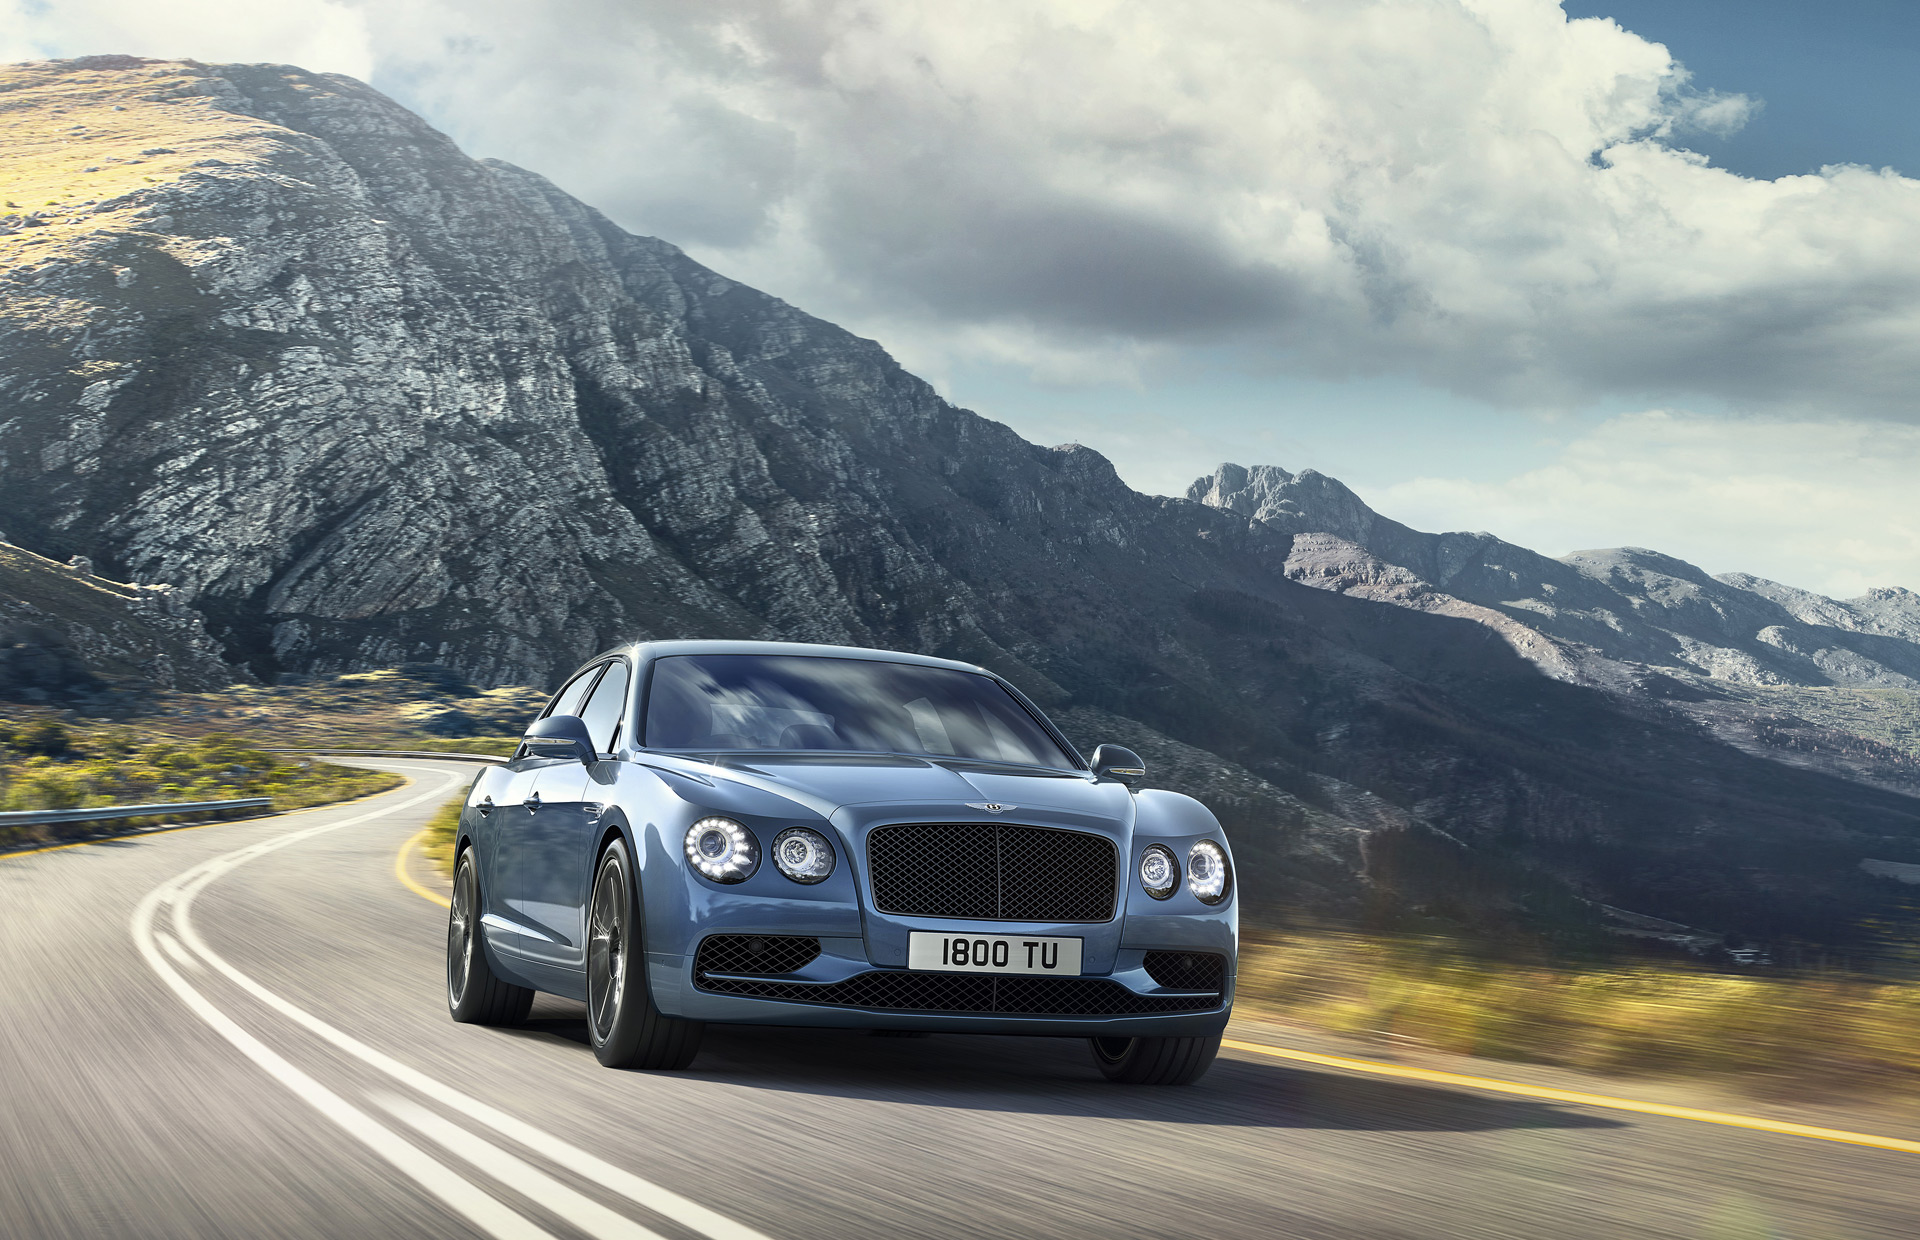 71bd4b4c50 Flying Spur W12 S is first Bentley 4-door to exceed 200 mph